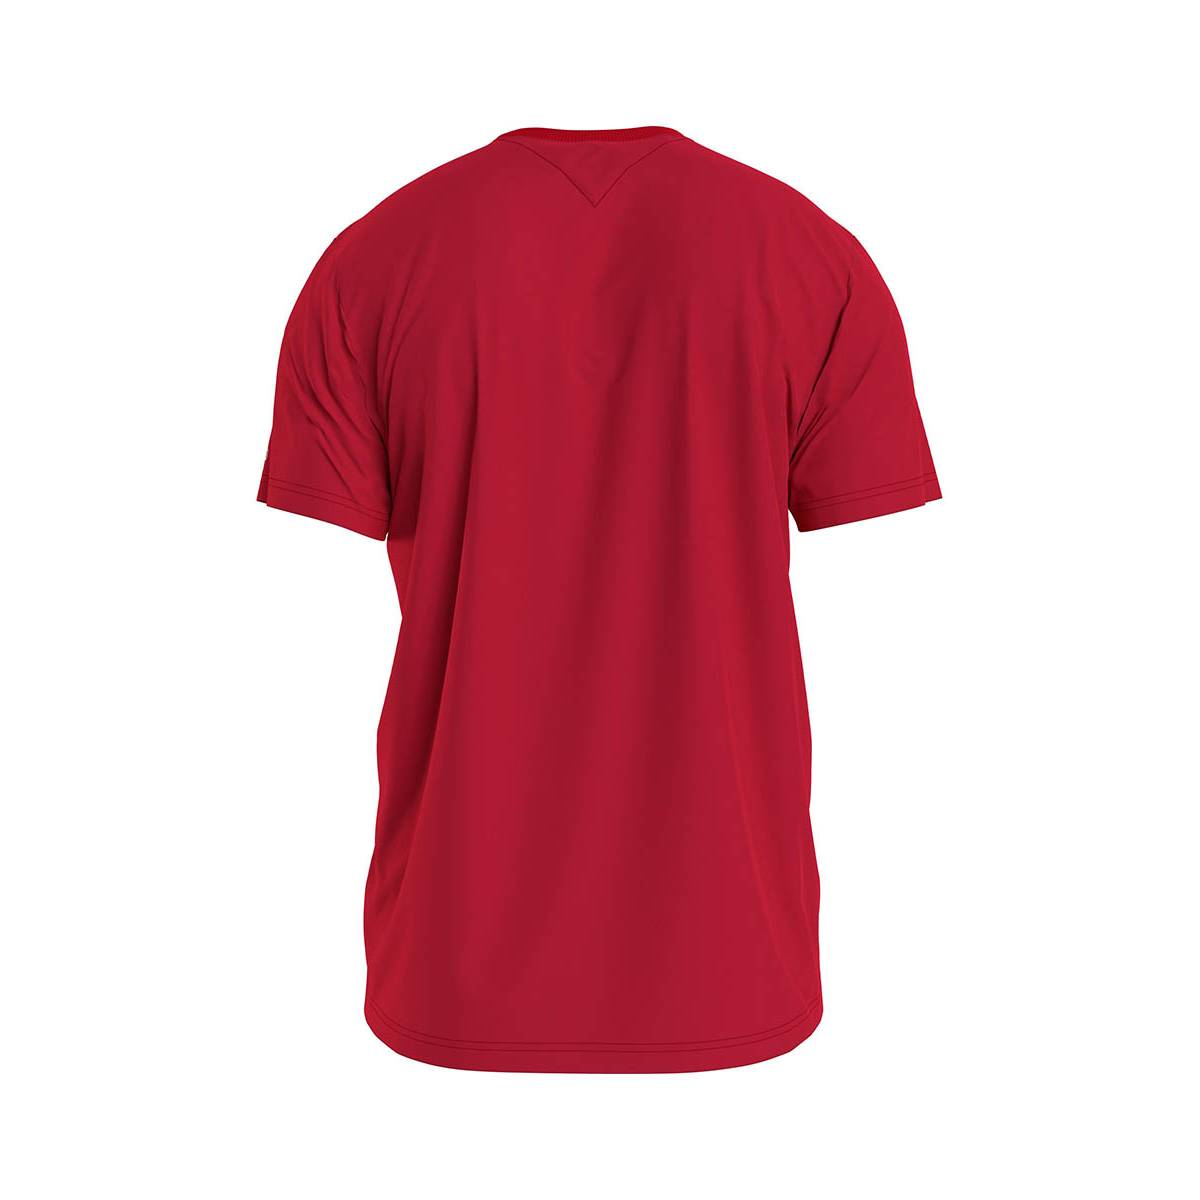 Tommy Jeans DM0DM10214 CORP LOGO TEE Rood